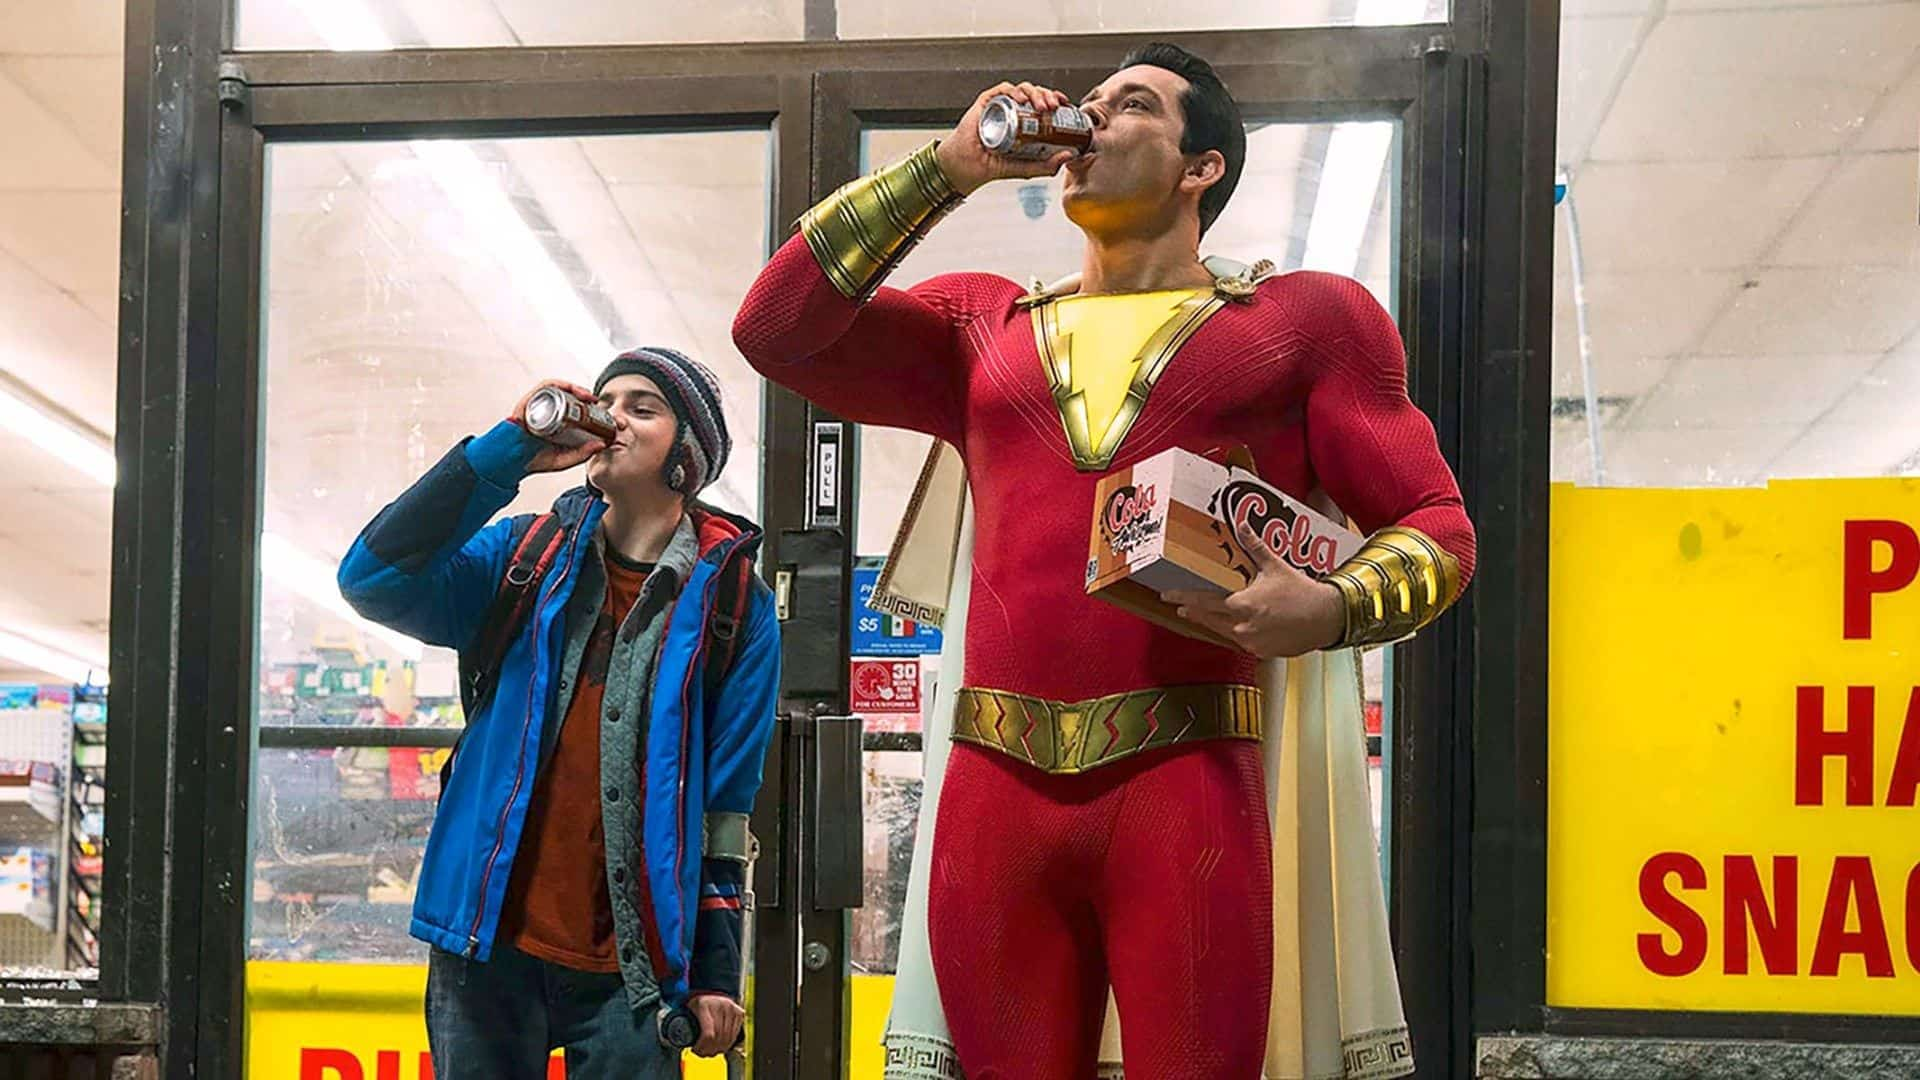 Shazam! (2019) Movie Review 2